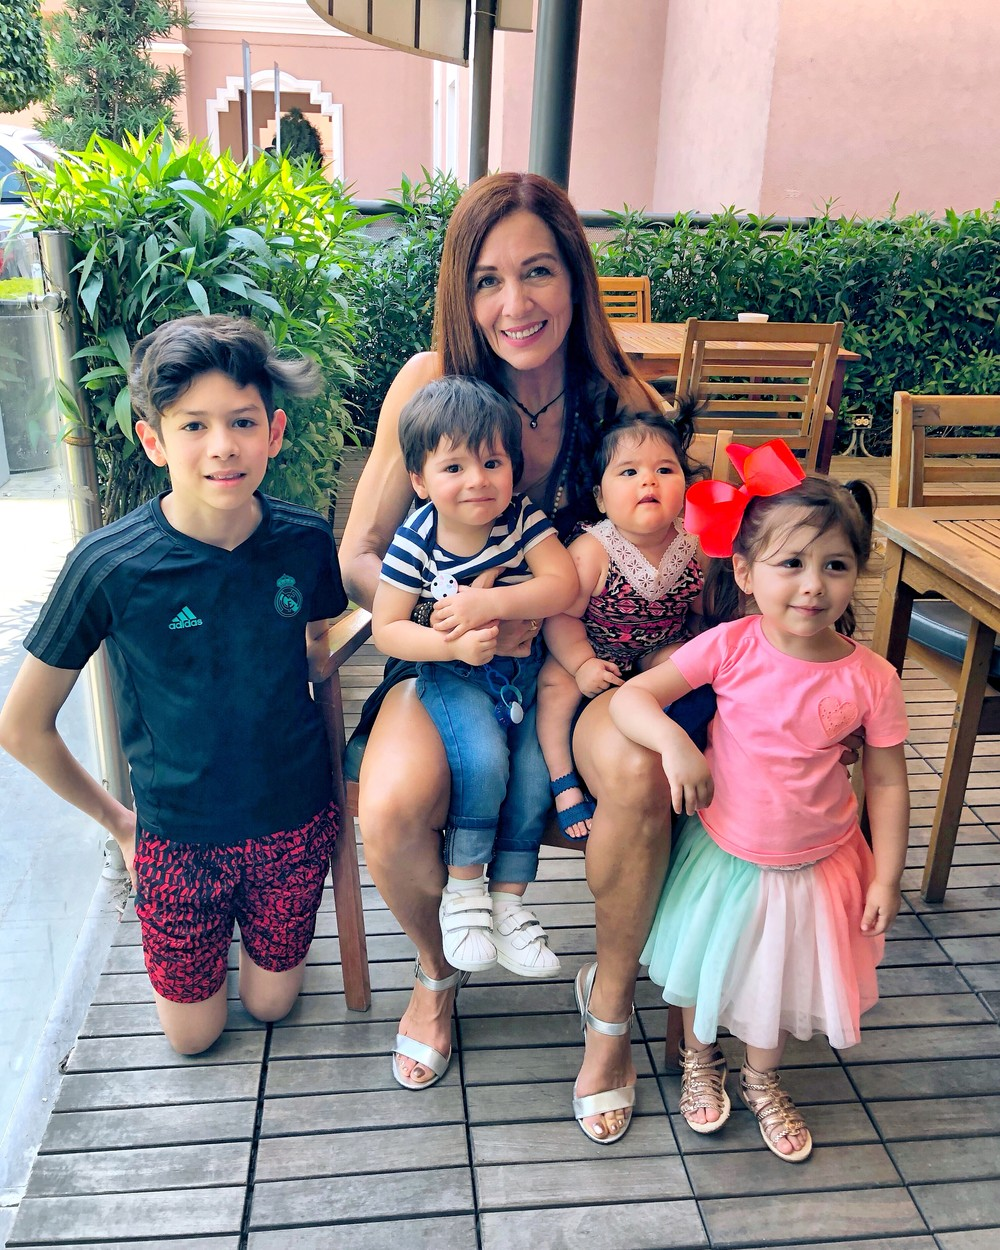 Alejandra pictured with her grandchildren. THIS GRAN swears by a RAW FOOD diet to keep her looking youthful - and the flirtatious advances she receives from MEN and being mistaken for her daughter's sister prove it's working. Pilates instructor, Alejandra Labastida-Shapiro (55) who lives in Chicago, Illinois, USA, began her journey to live a healthy lifestyle when she was just 10 years old when her father would encourage her to run with him. Growing up with healthy parents who would use natural remedies and medicinal herbs to avoid future sicknesses and injuries, educated Alejandra about the world of fitness and diets. While she initially chose this lifestyle for vanity reasons, as she grew older, she began to re-shift her focus to improve her health. In 2000, Alejandra, who is a mum to three adults; Roberto (34), Alejandra (32) and Mauricio (25), was introduced to Pilates through a friend, which she fell in love with. She avoids any processed food and sugar and consumes mainly raw and organic food. Her youthful figure has prompted many advances from men who give her compliments on her appearance and has even received flowers from a secret admirer. mediadrumworld.com / Alejandra Labastida-Shapiro, Image: 474475287, License: Rights-managed, Restrictions: , Model Release: no, Credit line: mediadrumworld.com / Alejandra L / Media Drum World / Profimedia